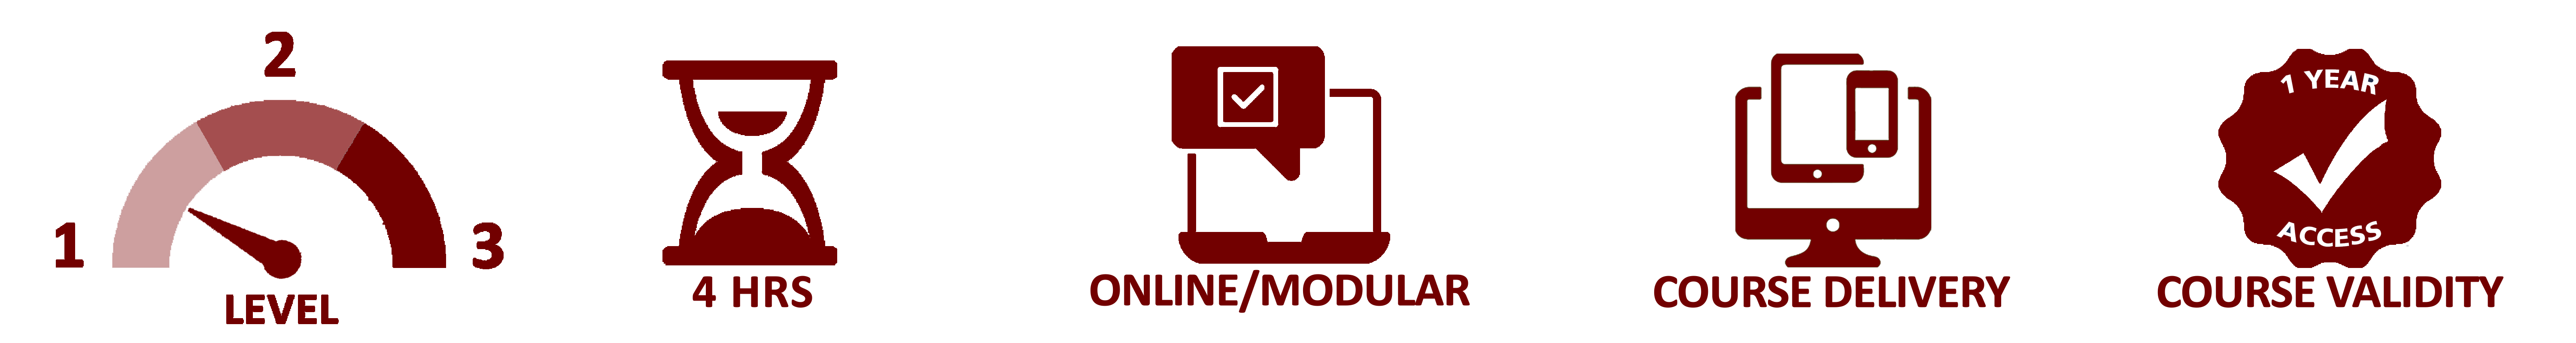 Health and Safety in the Workplace - Level 1 - Online Learning Courses - E-Learning Courses - Mandatory Compliance UK -